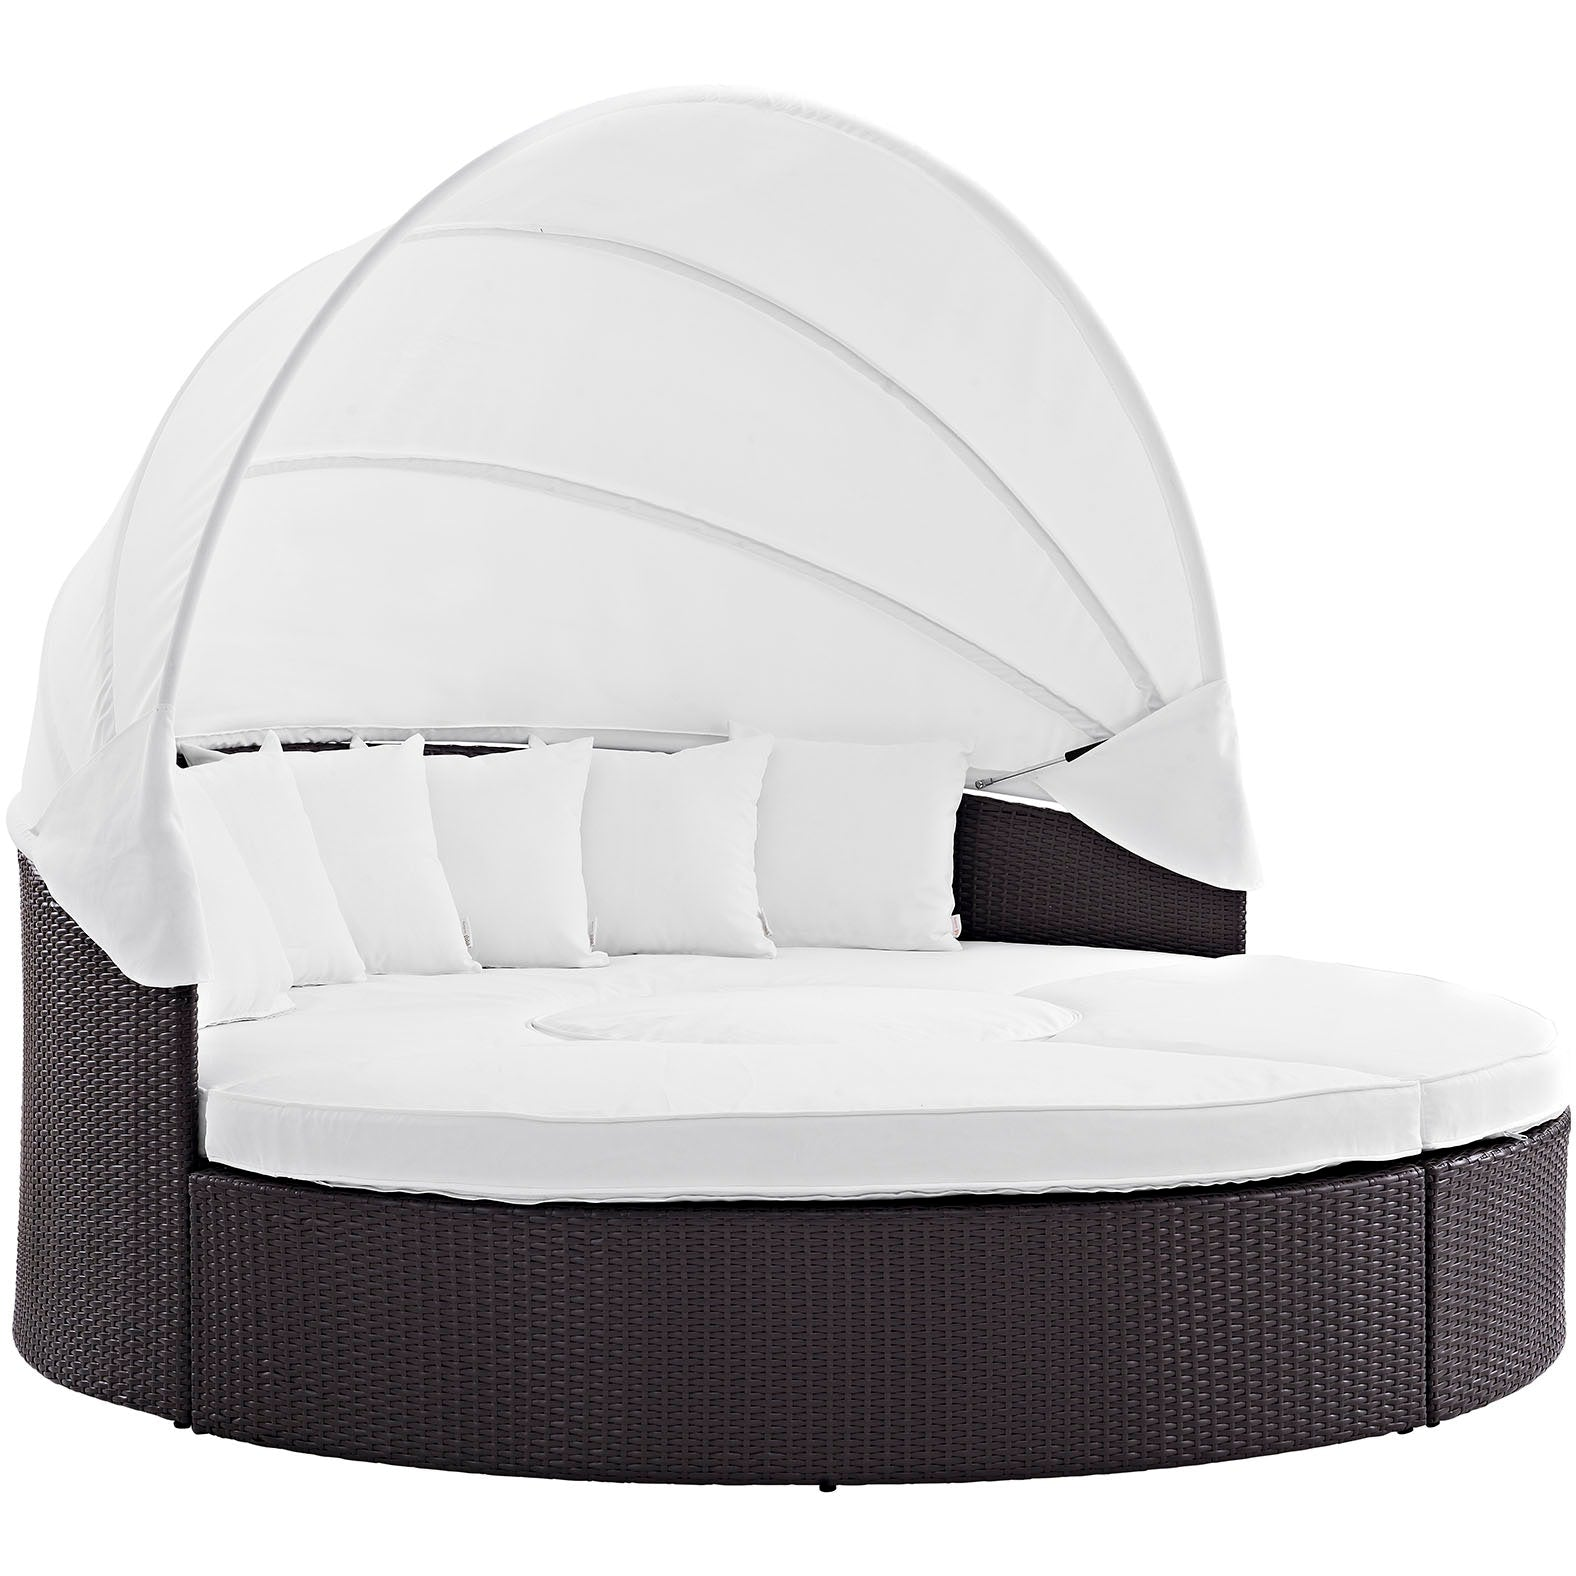 Convene Canopy Outdoor Patio Daybed - Espresso White